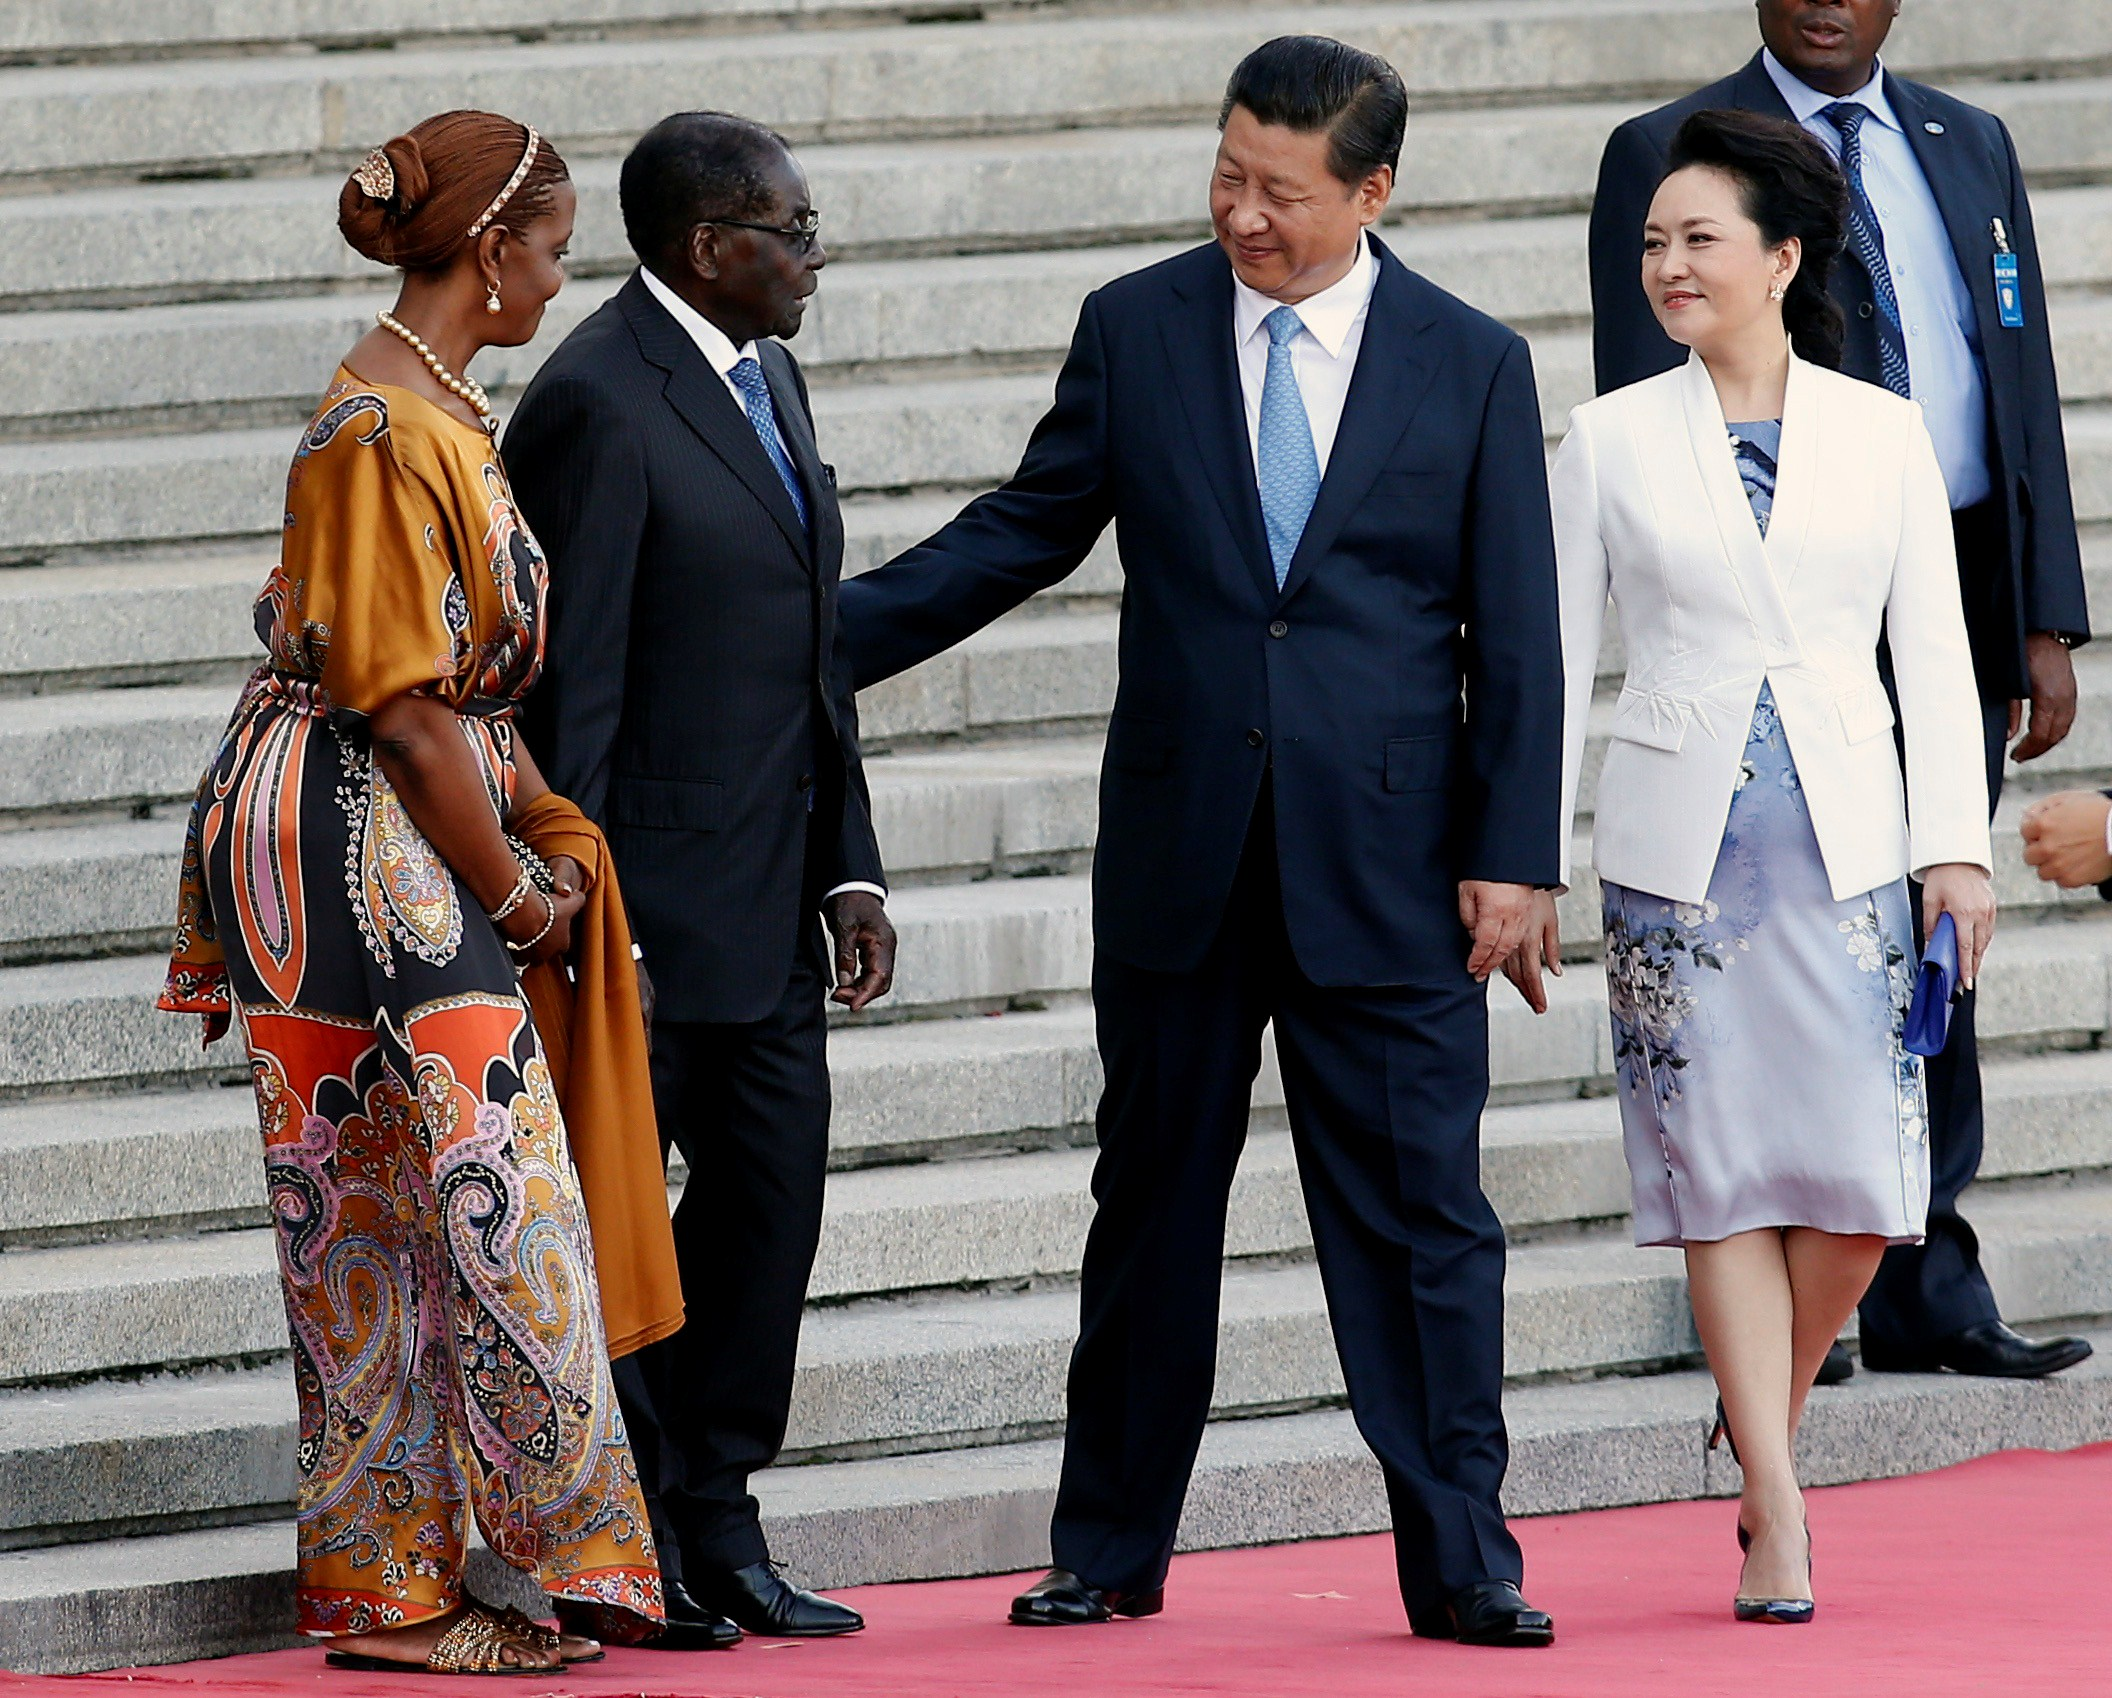 China welcomes back 'old friend' Robert Mugabe for state visit